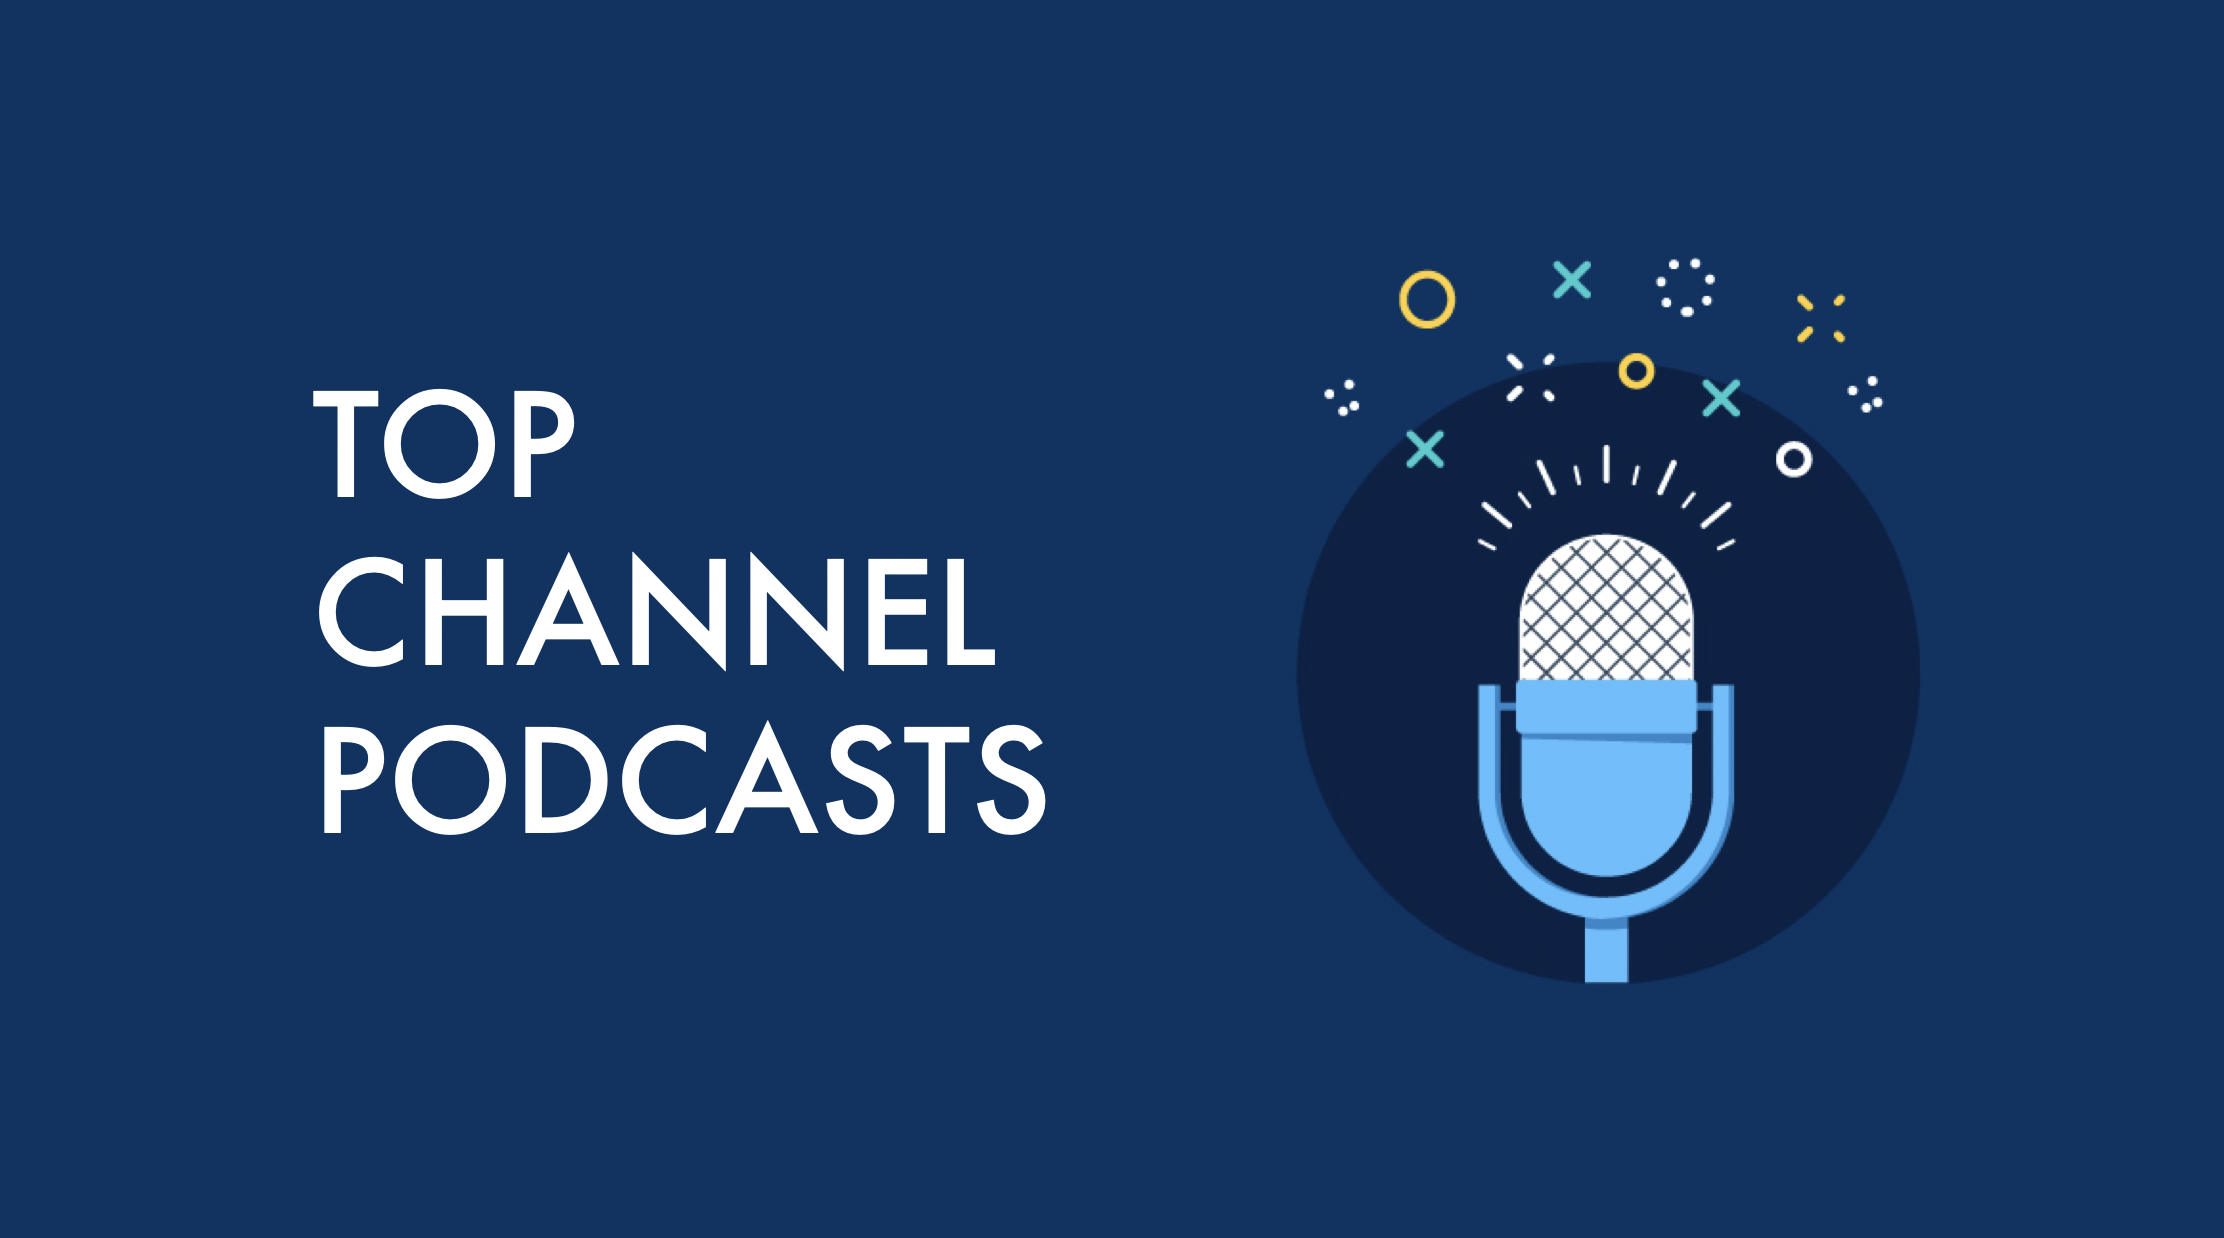 The 64 Best Channel Podcasts Of 2019 – Compiled by Forrester's Jay McBain